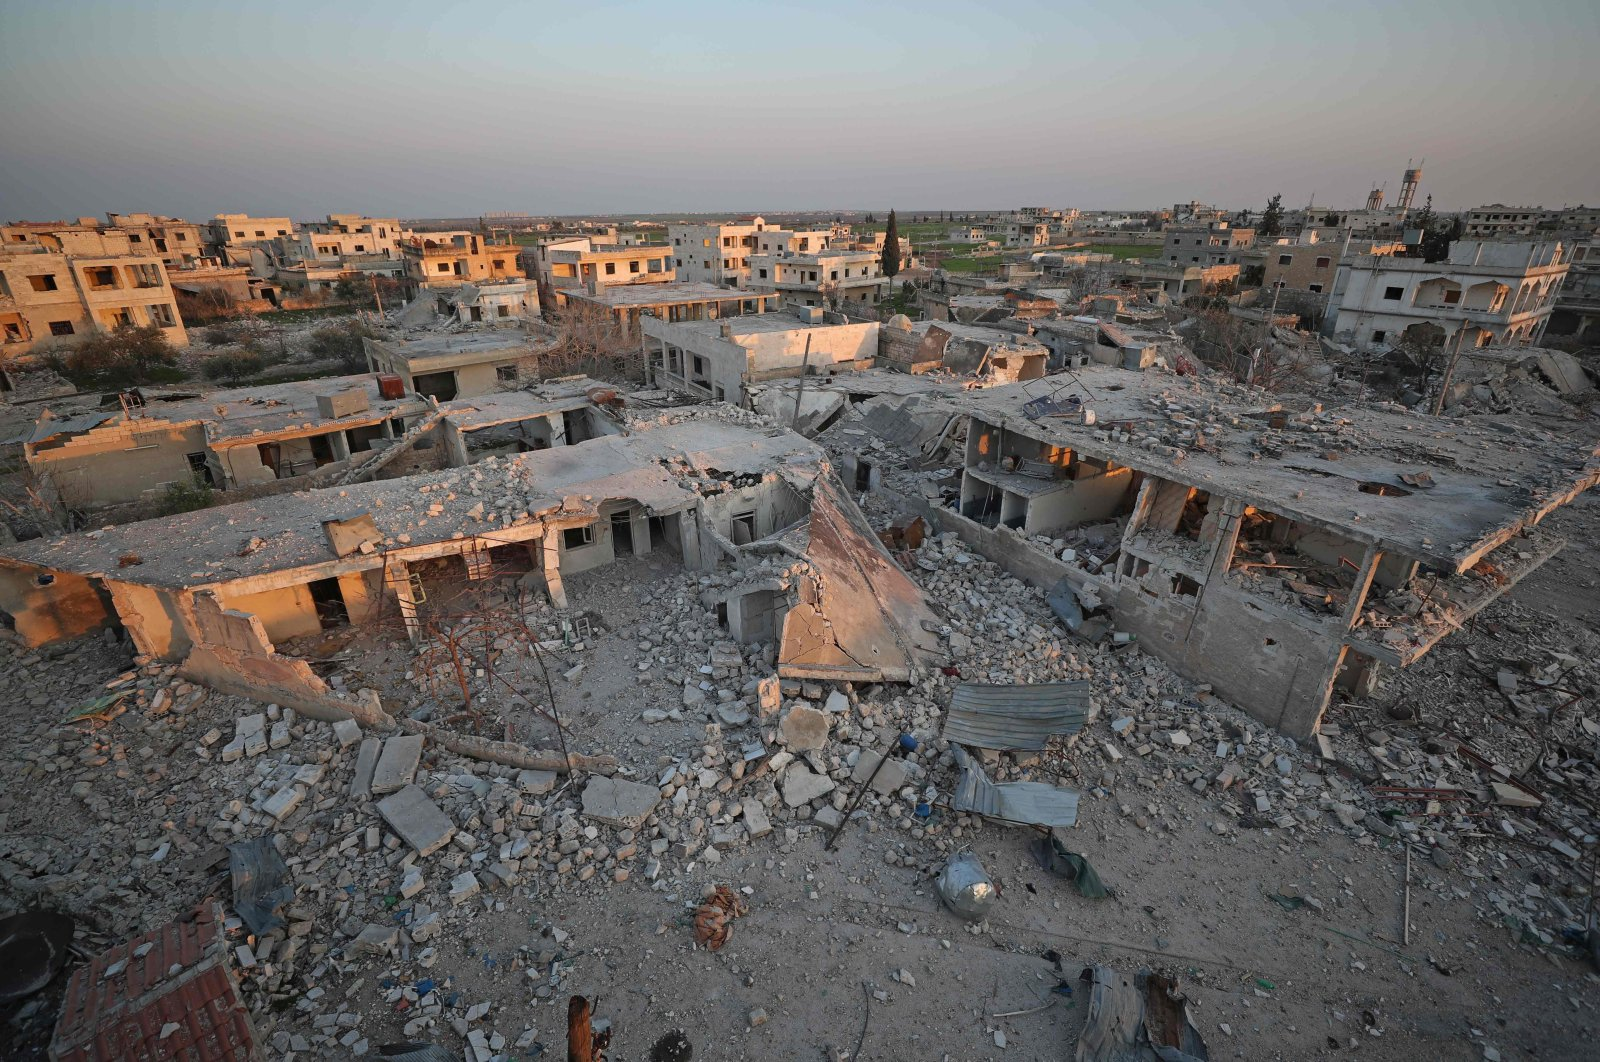 A picture taken on March 7, 2020, shows destruction in the village of al-Nayrab, about 14 km southeast of the city of Idlib in northwestern Syria. (AFP Photo)